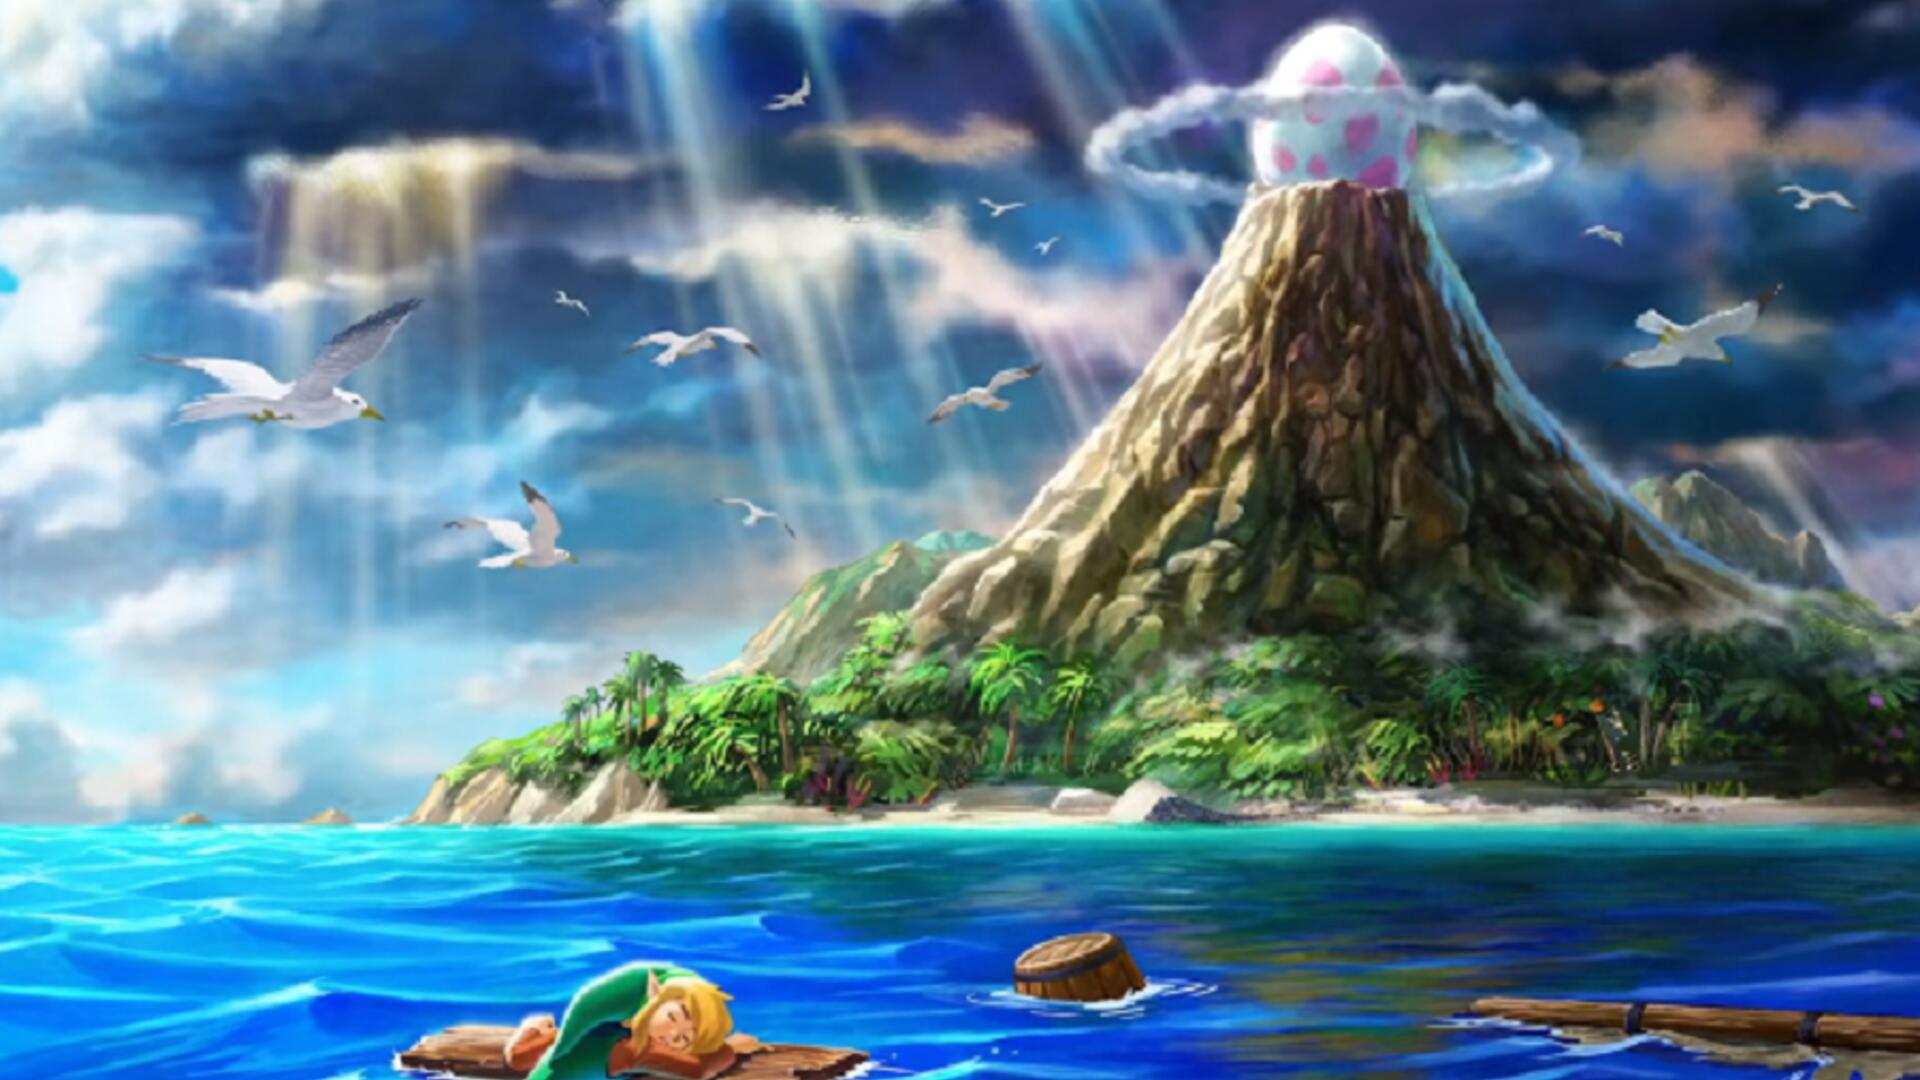 Nintendo Fans Find Link's Awakening Remake Details in the E3 2019 Lanyard